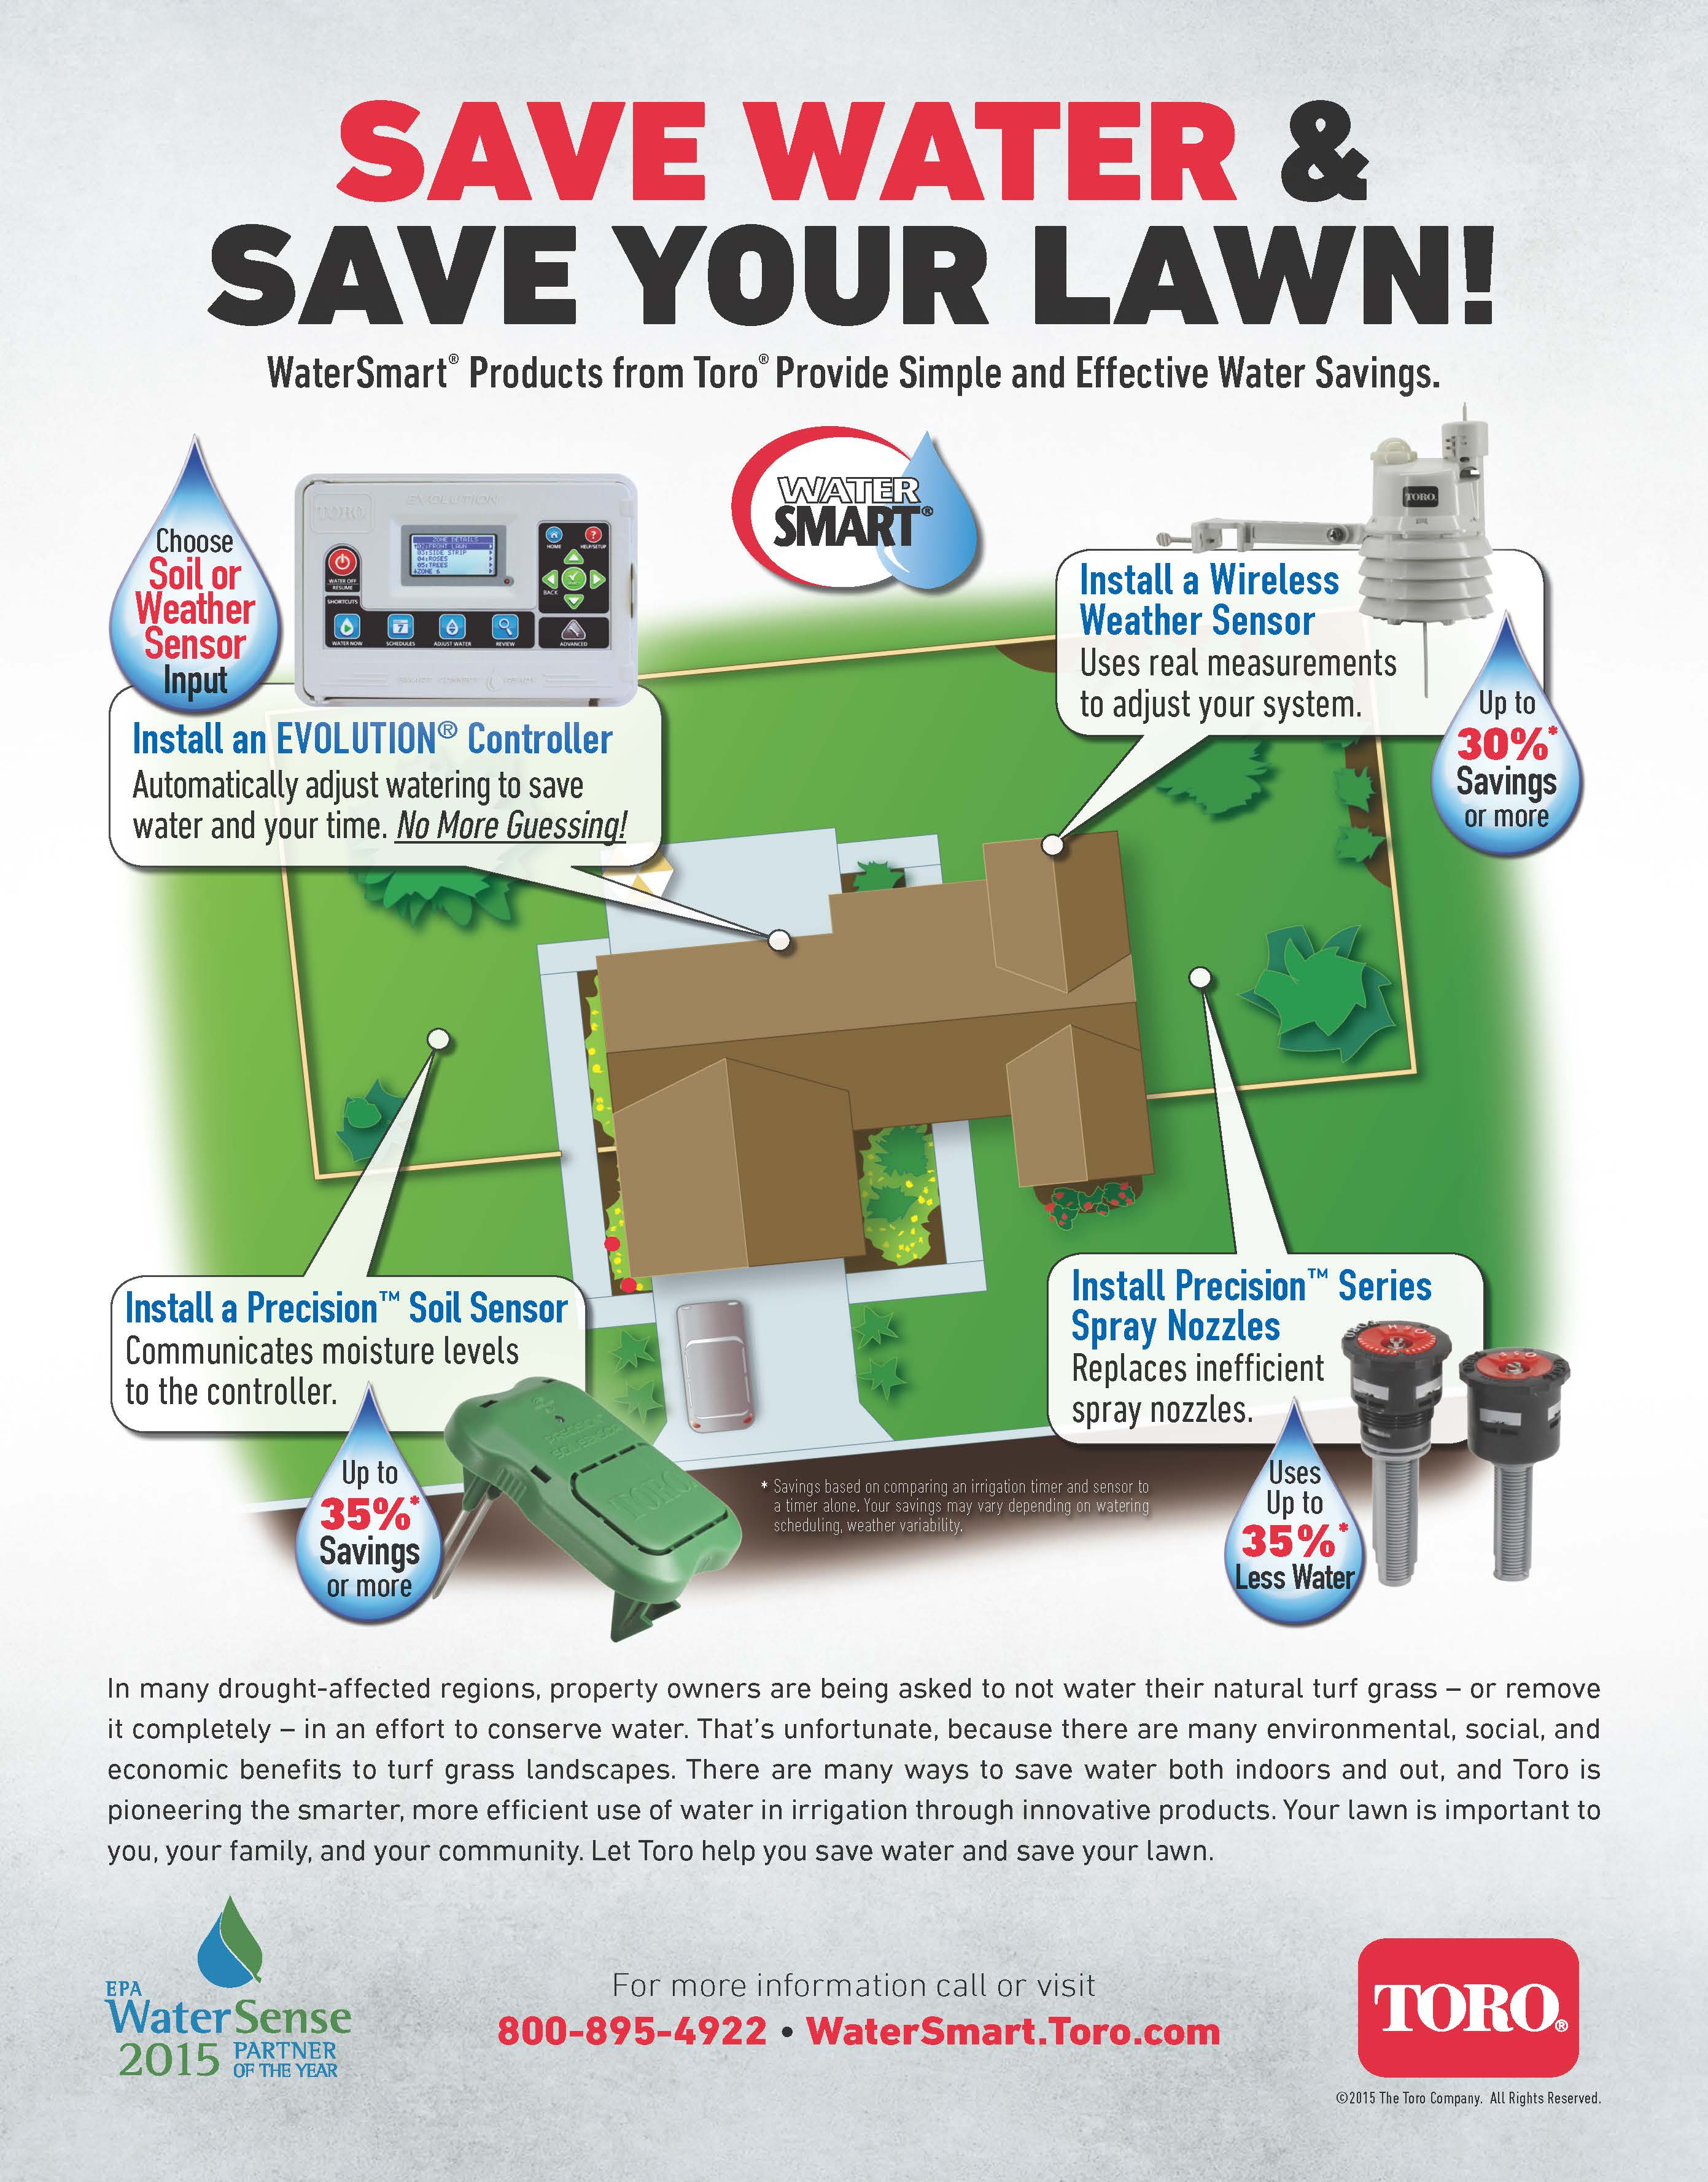 save water and save your lawn